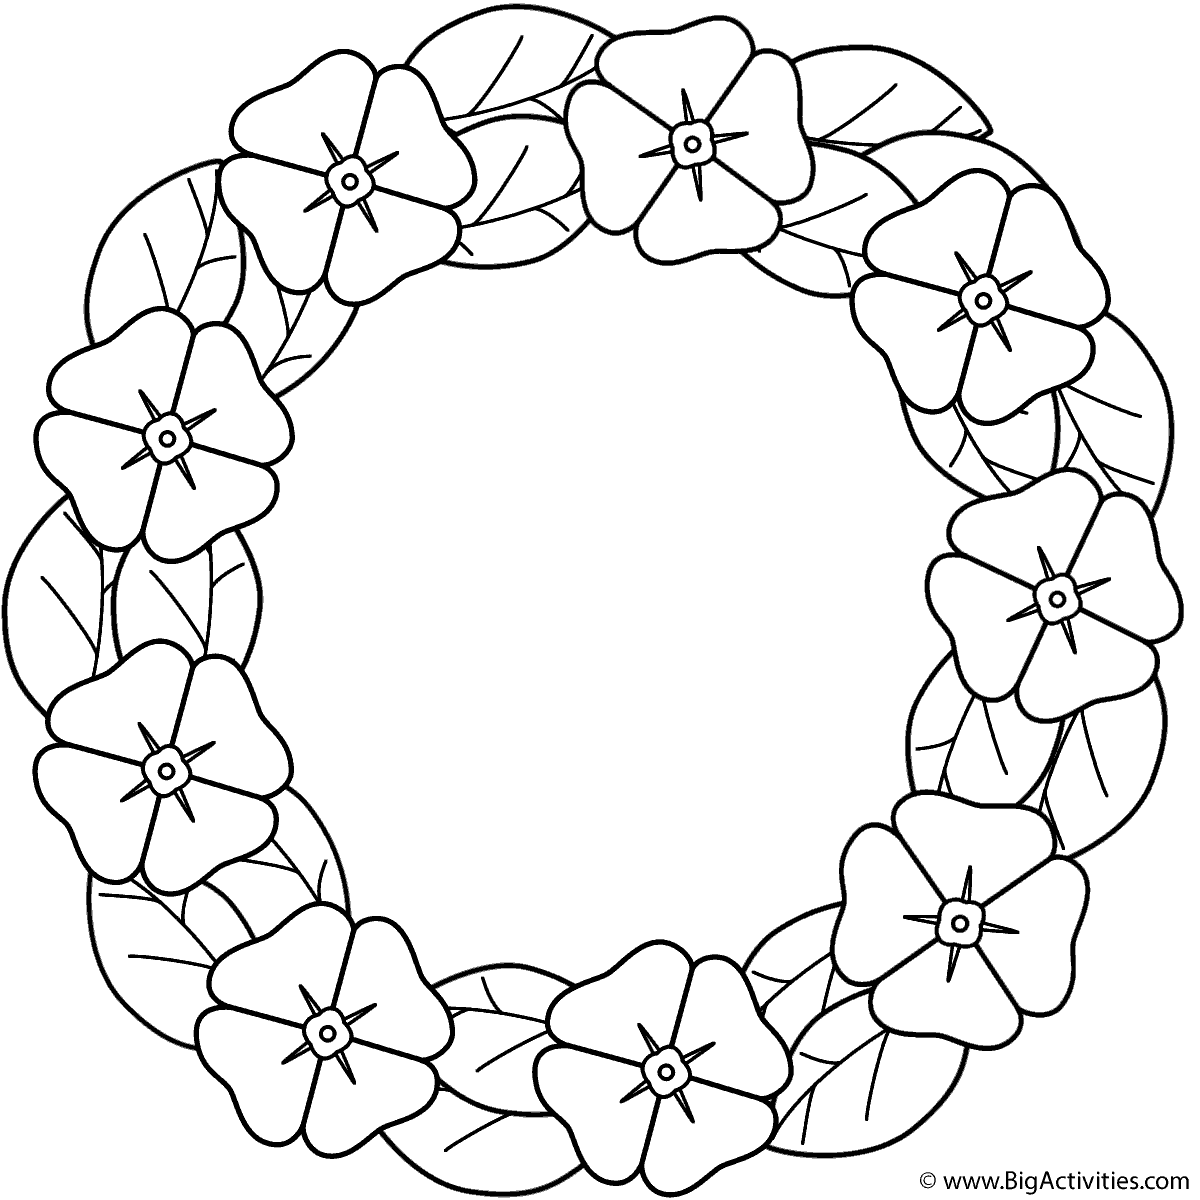 Poppy wreath - Coloring Page (Plants)